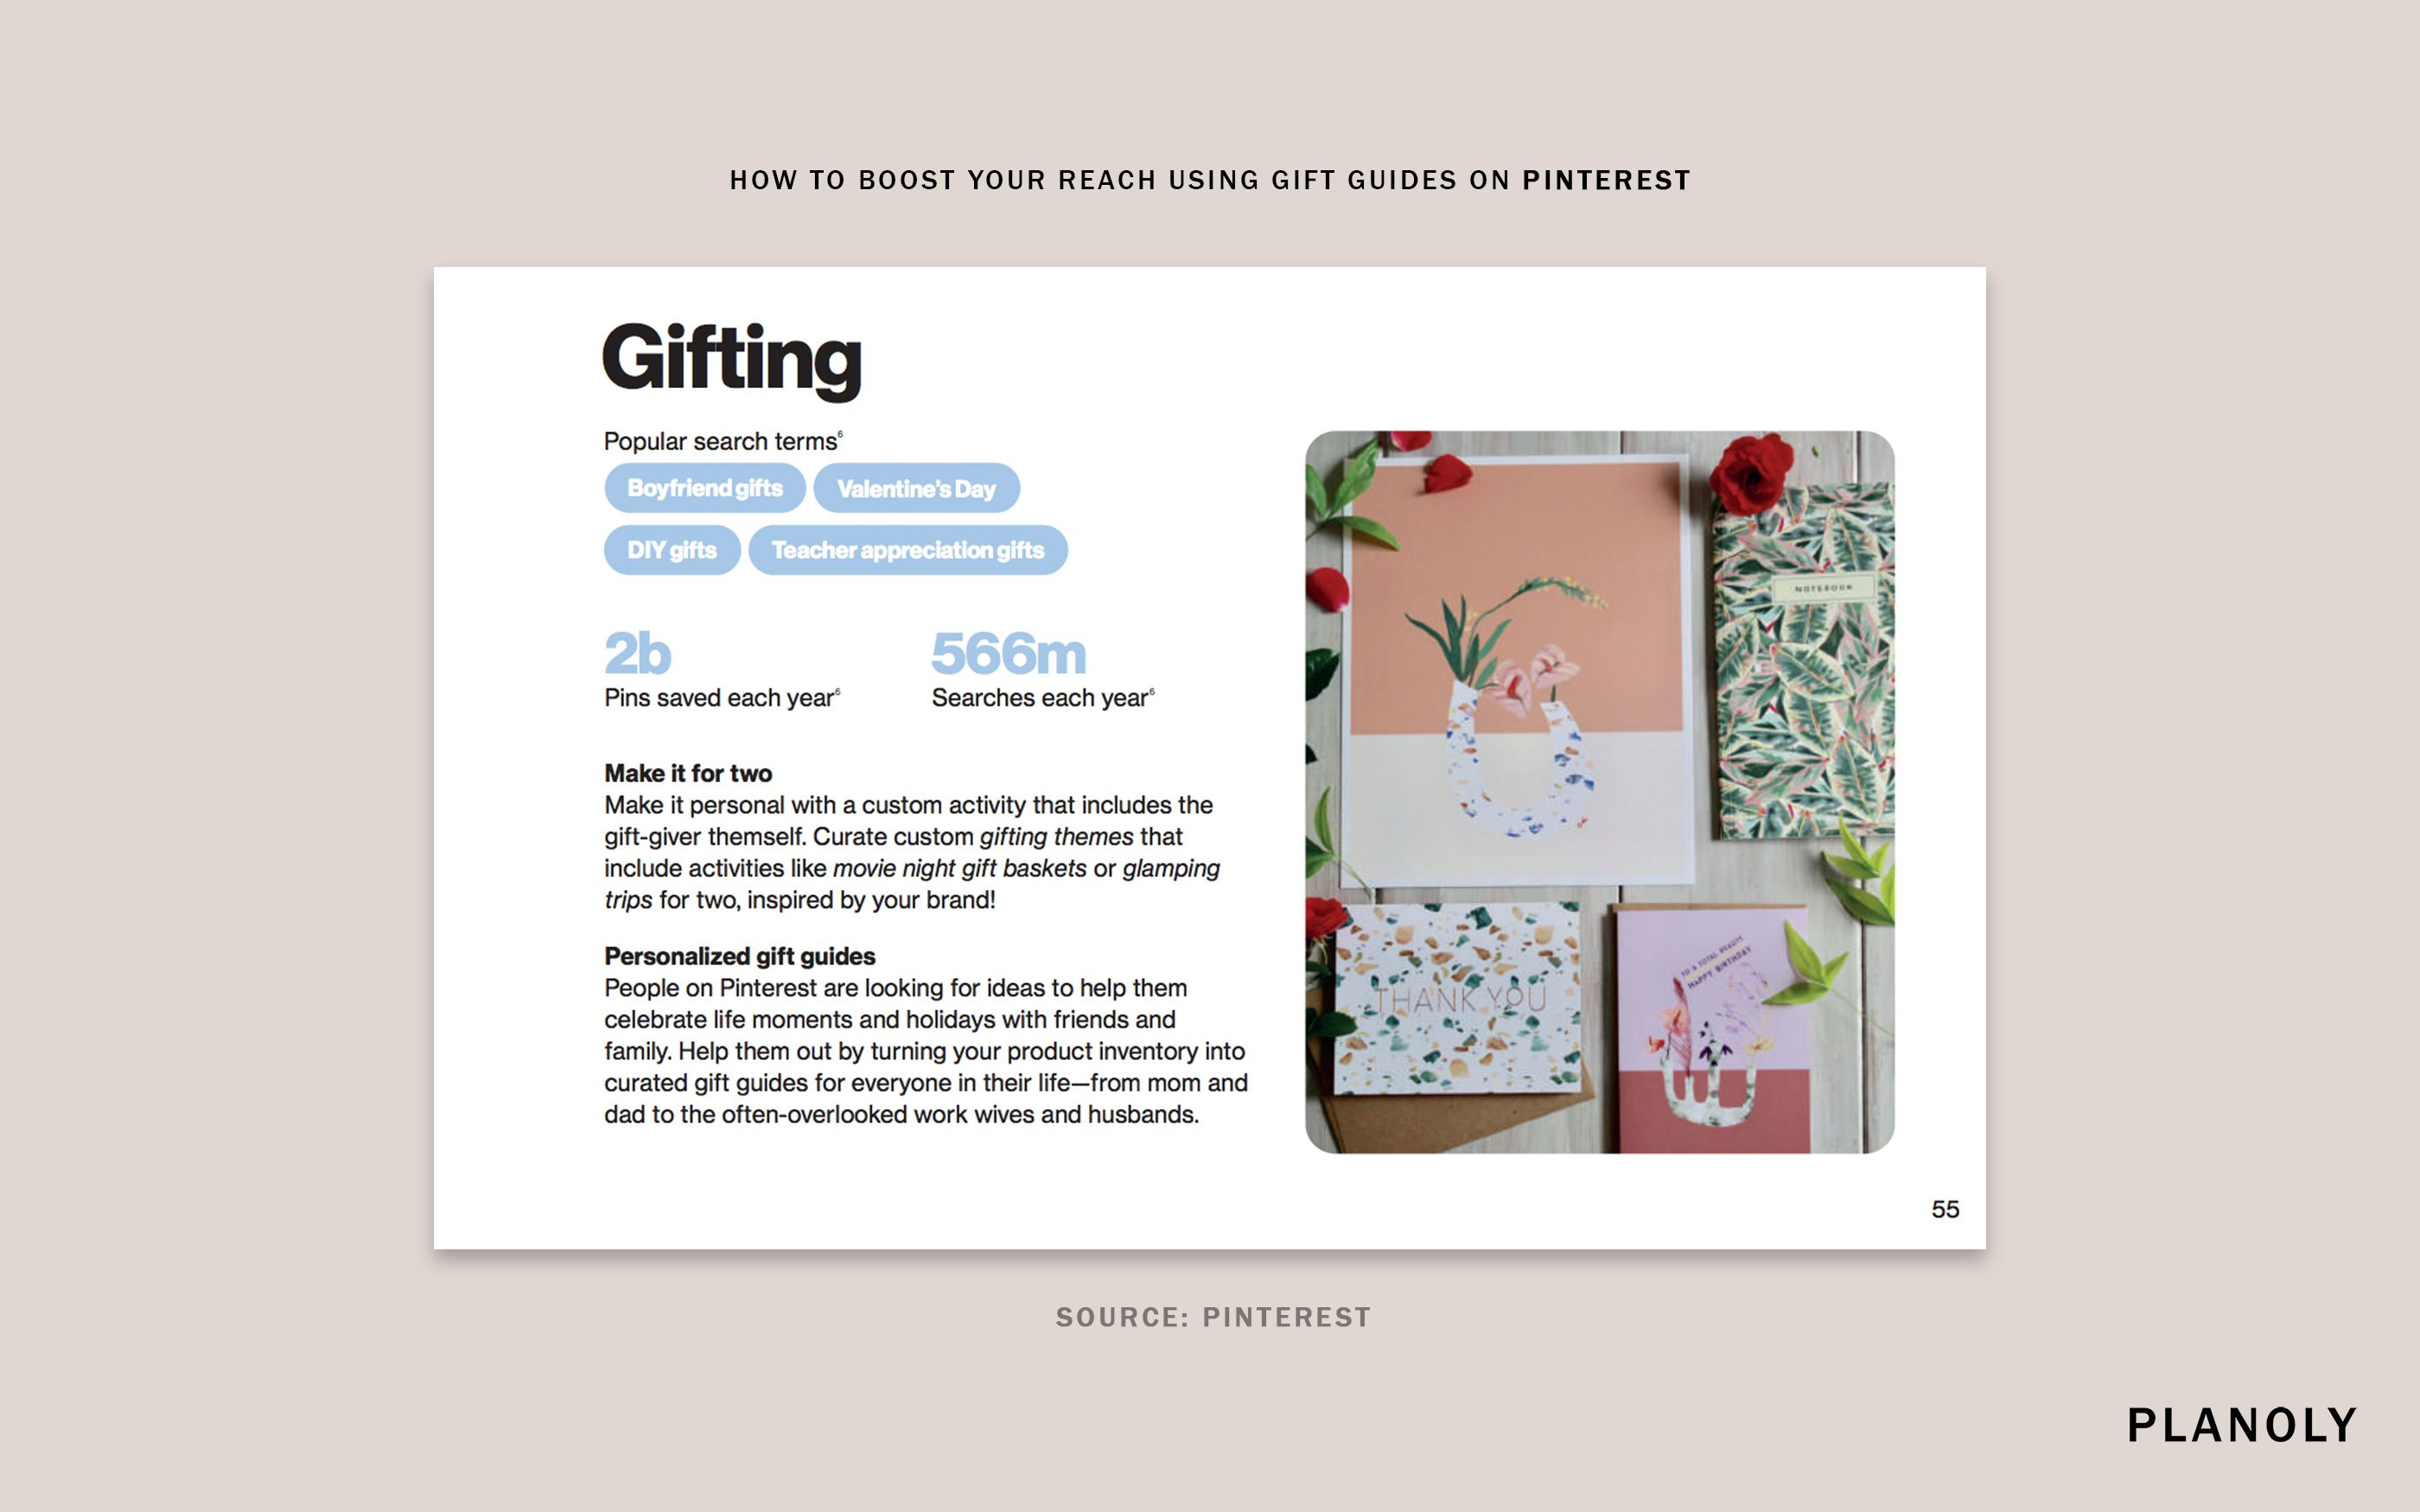 How to Boost Your Reach Using Gift Guides on Pinterest